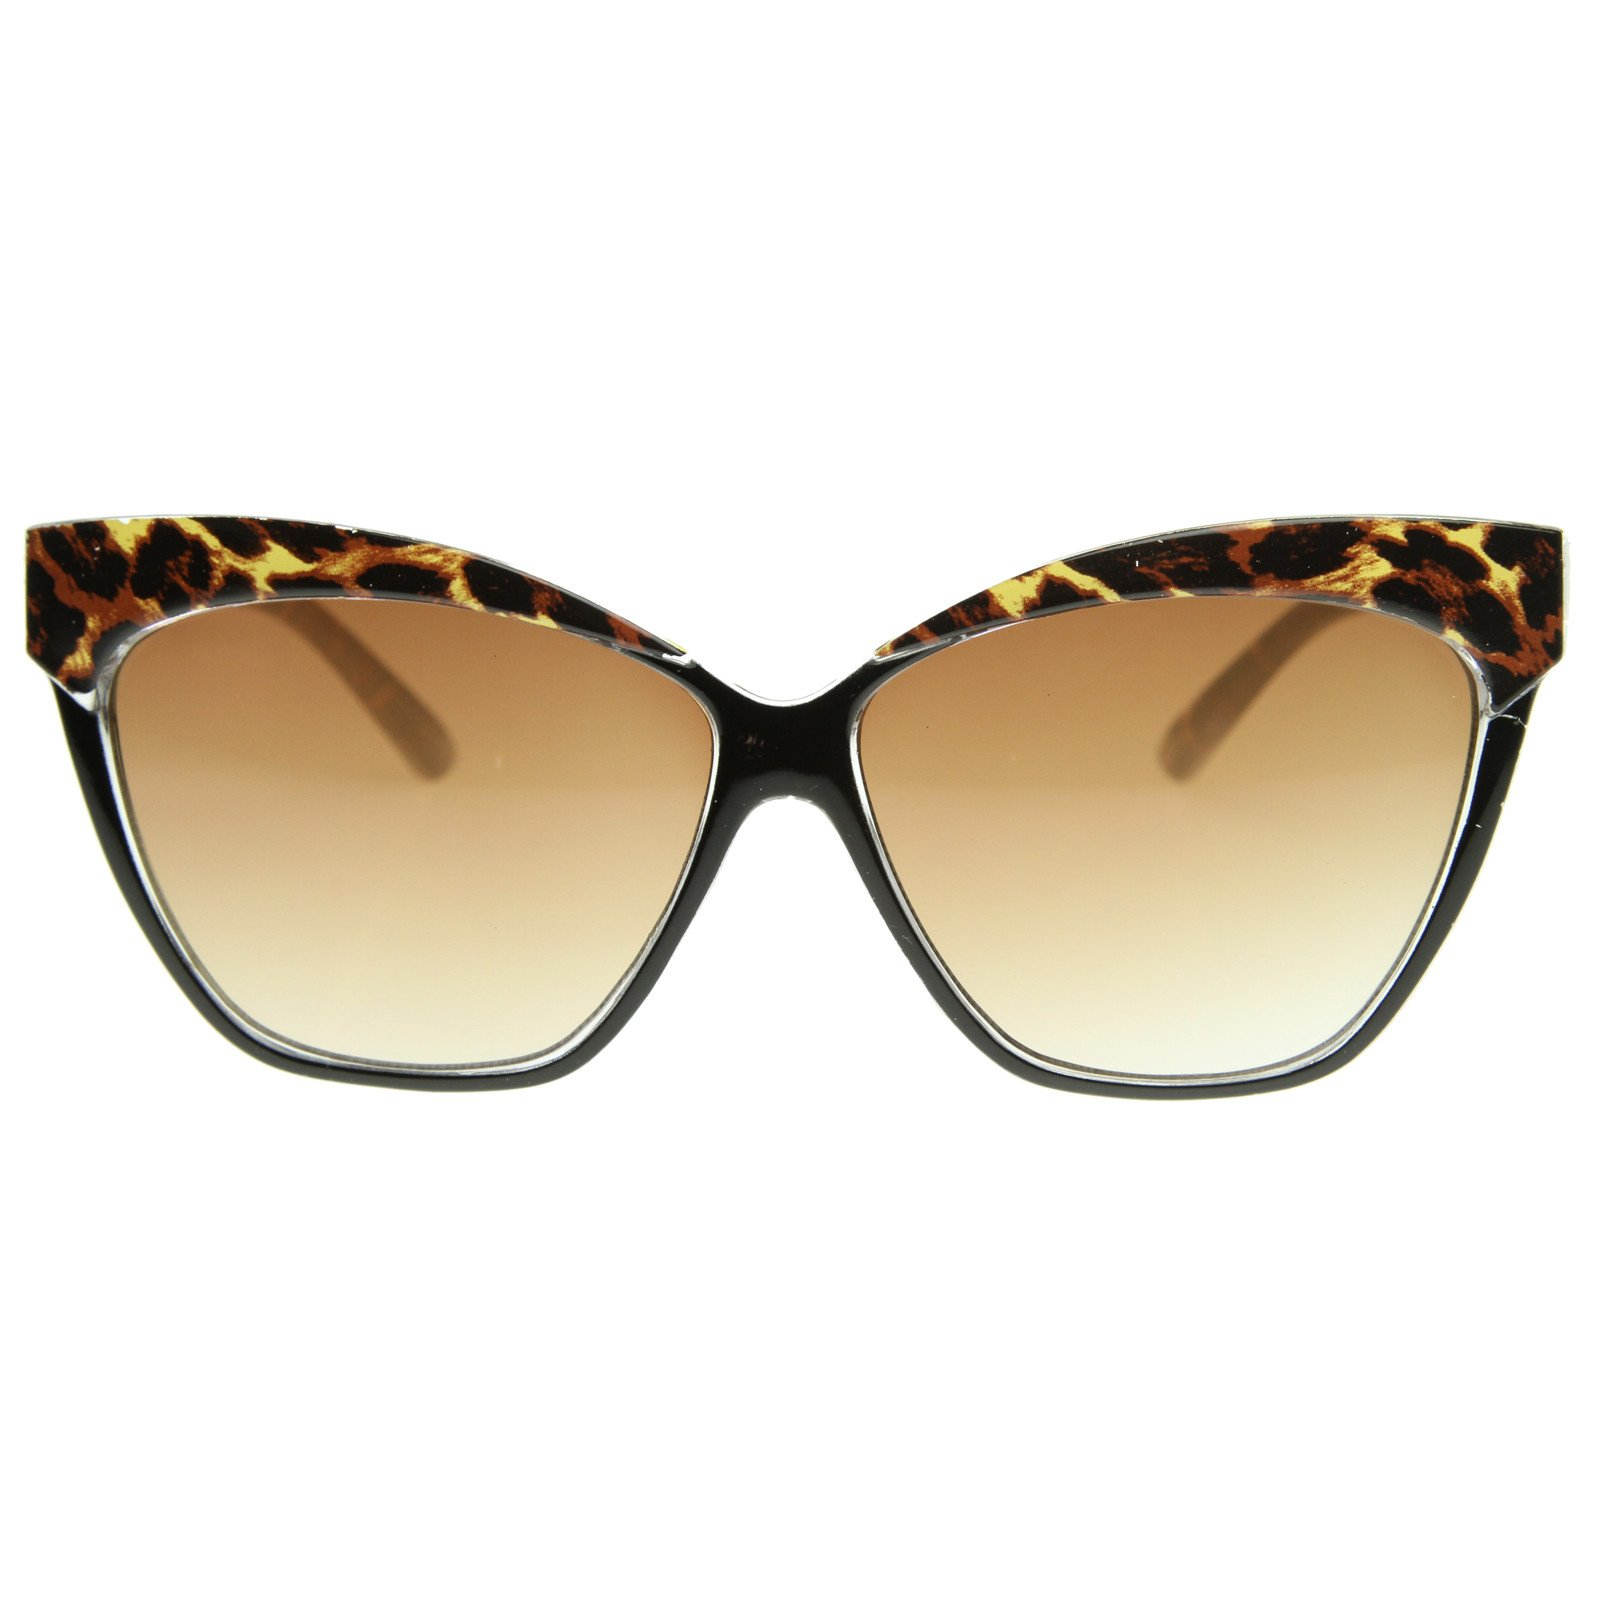 Image of High Brow Oversize Cat Eye Pointed Tip Fashion Sunglasses 8521